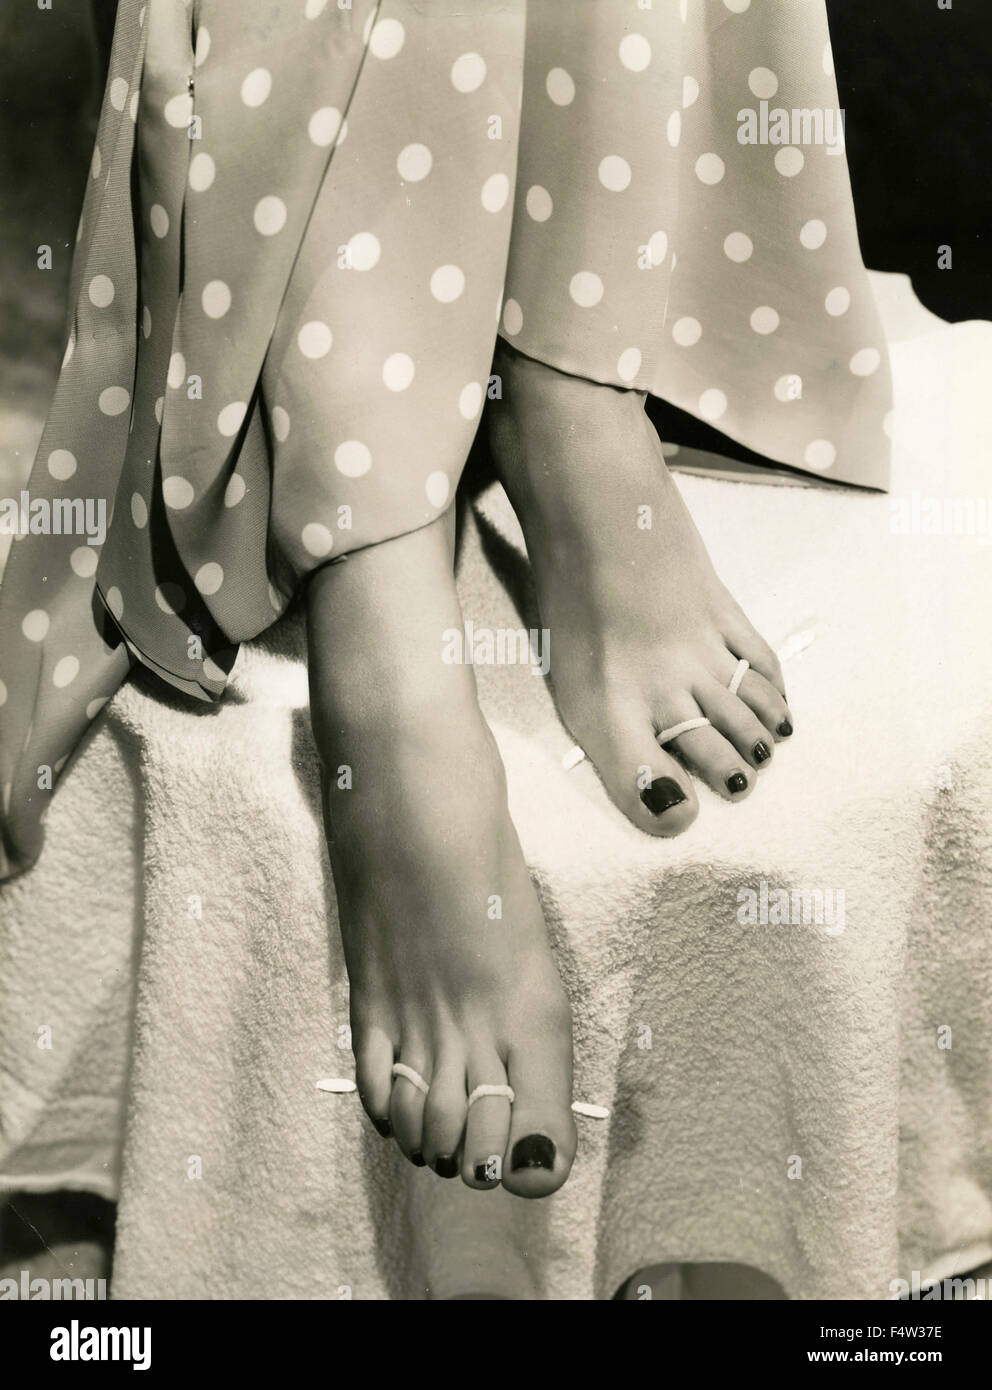 A Model Has Put The Polish On The Nails Of The Toes Stock Photo